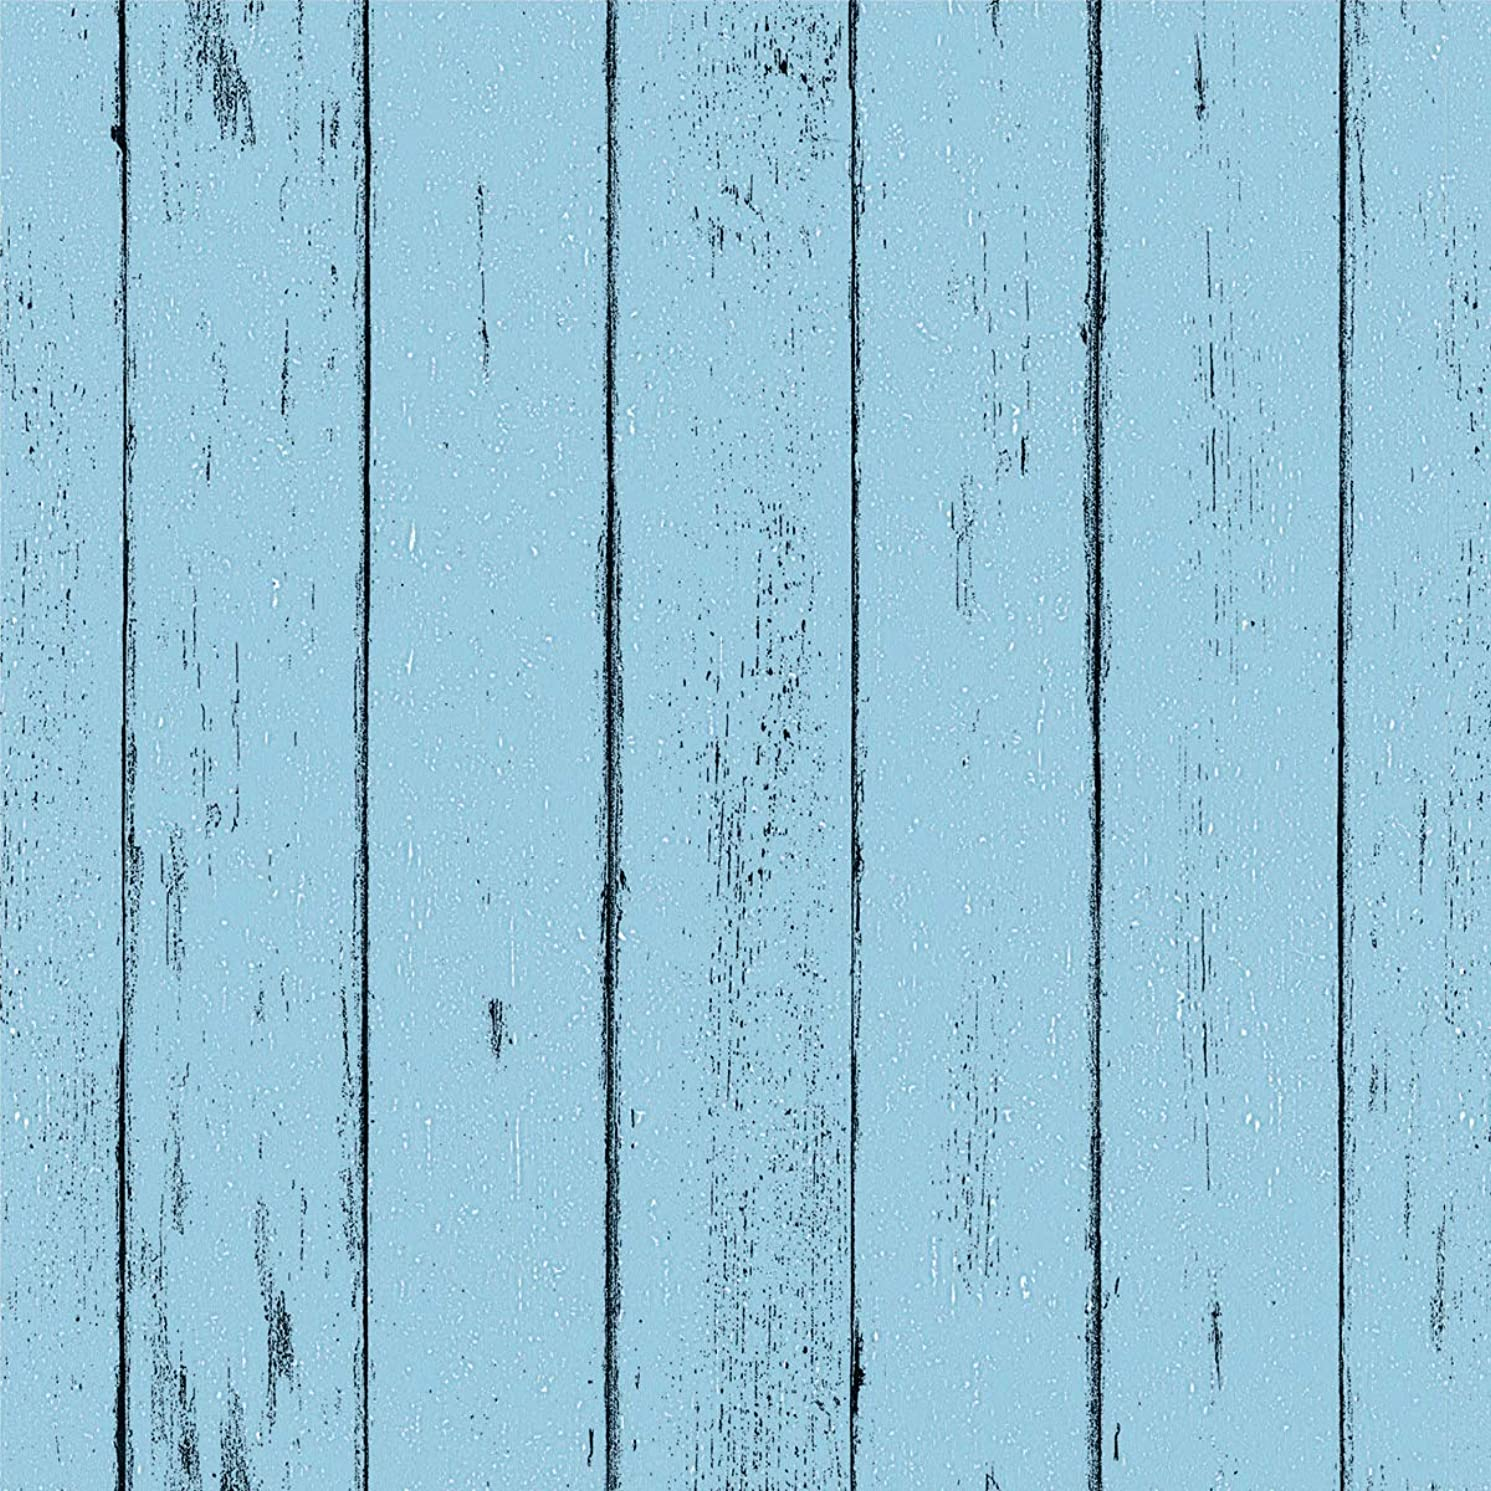 """Blue Wood Wallpaper - Wood Peel and Stick Wallpaper - Contact Paper or Wall Paper - Removable Wallpaper - Prepasted Wallpaper - 1.48 ft. x 9.83 ft. - 14.55 sq. ft. (17.71"""" Wide x 118"""" Long)"""